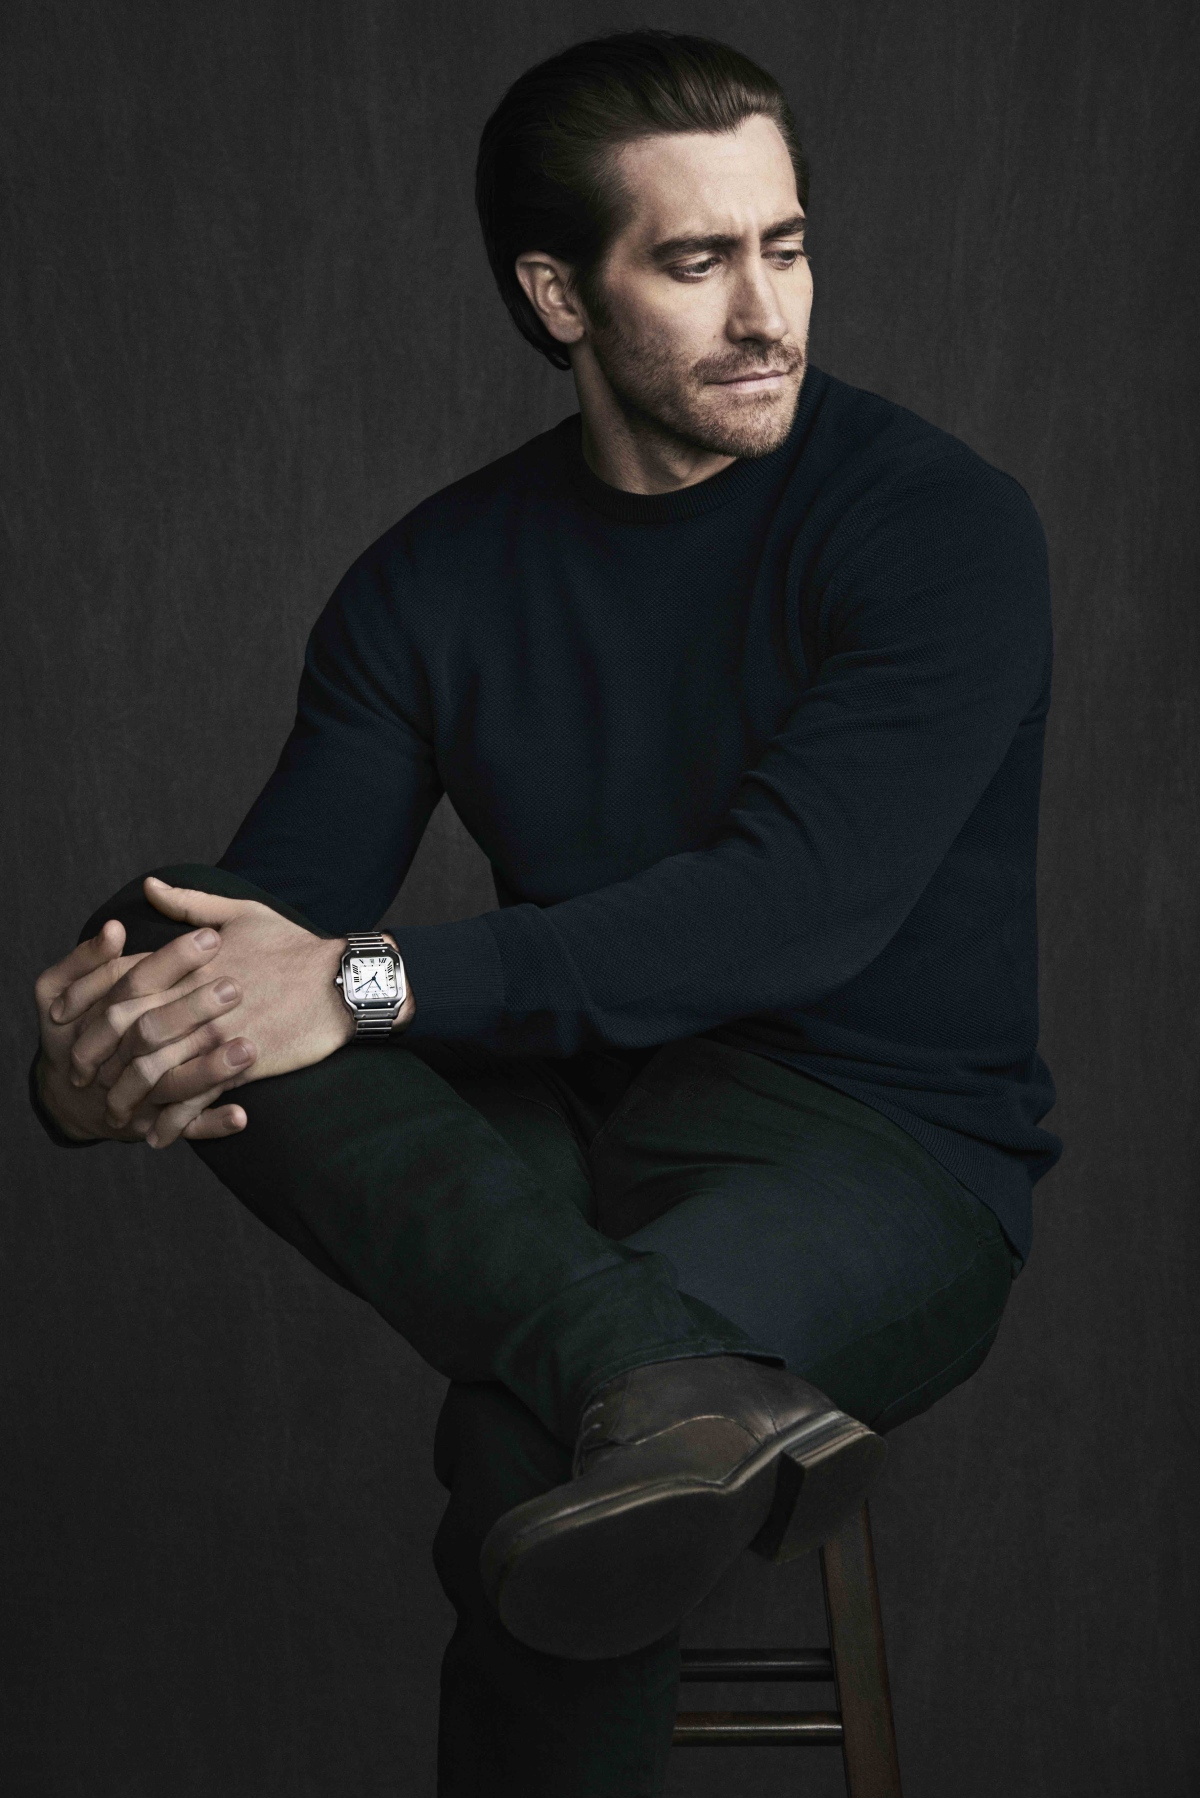 1MB_Jake Gyllenhaal - Matthew Brookes@Cartier (002)